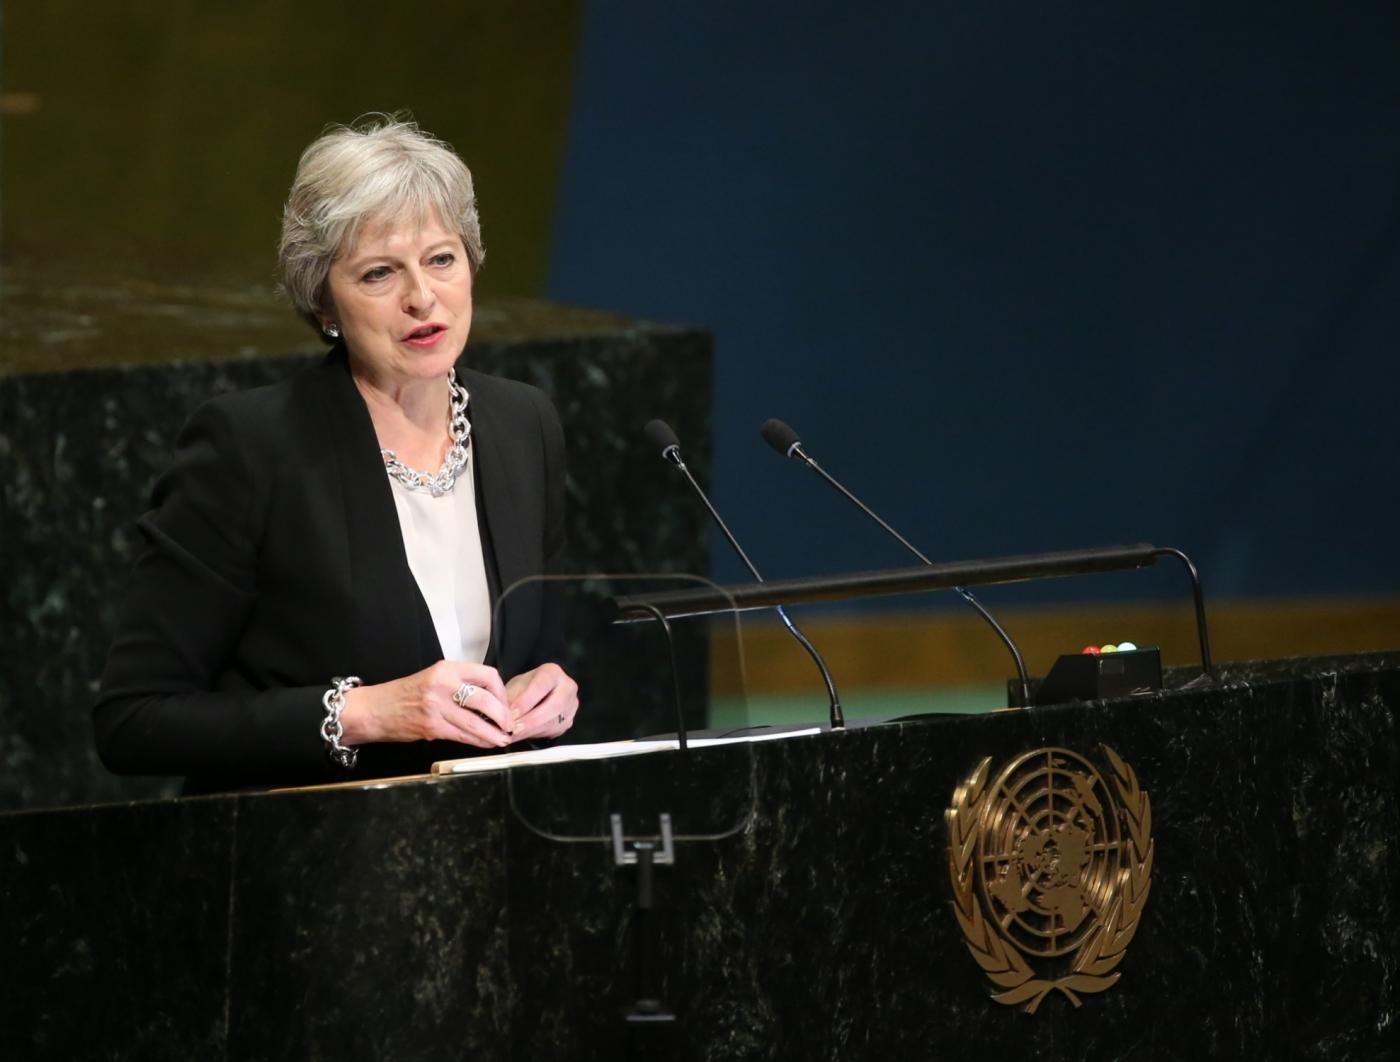 UNITED NATIONS, Sept. 26, 2018 (Xinhua) -- British Prime Minister Theresa May addresses the General Debate of the 73rd session of the United Nations General Assembly at the UN headquarters in New York, on Sept. 26, 2018. (Xinhua/Qin Lang/IANS) by .